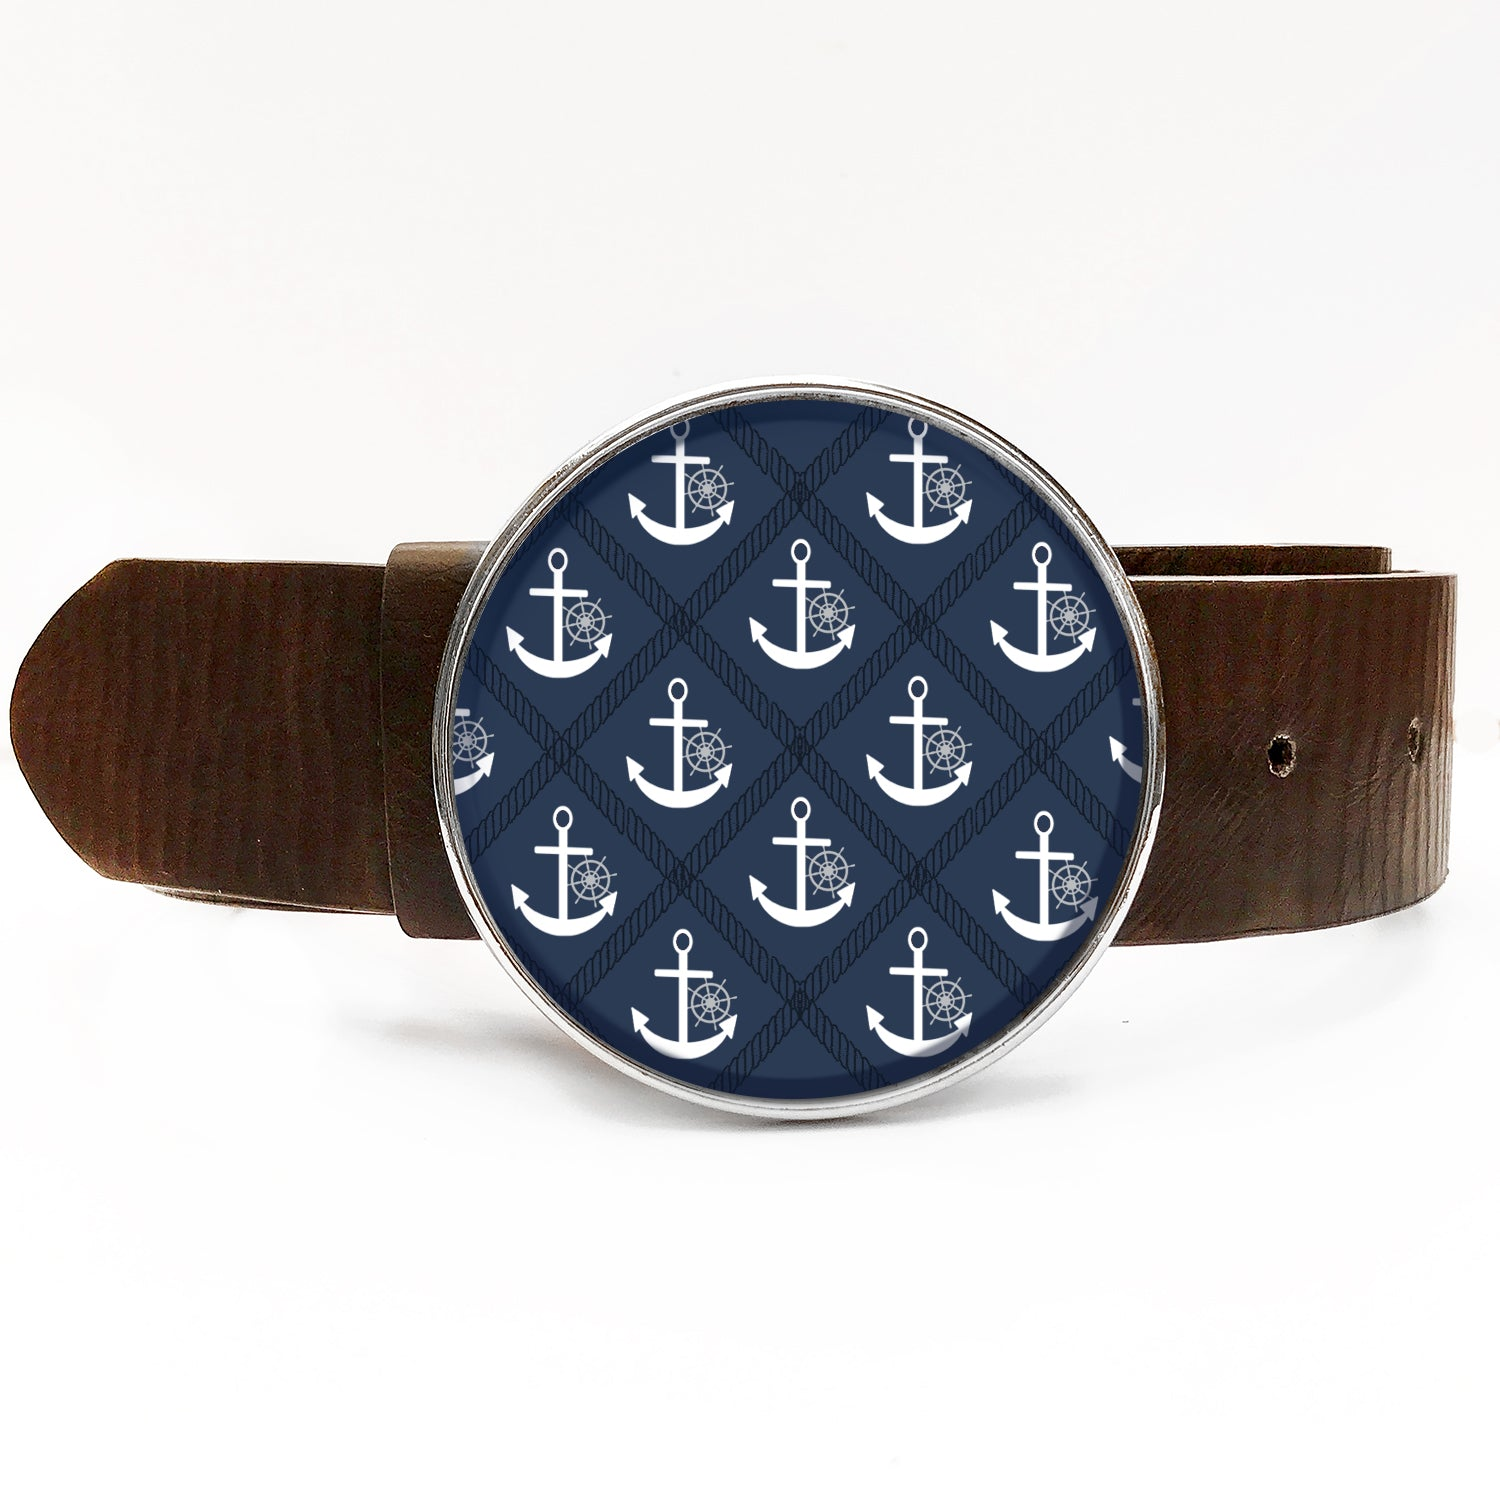 Anchors Away Belt Buckle